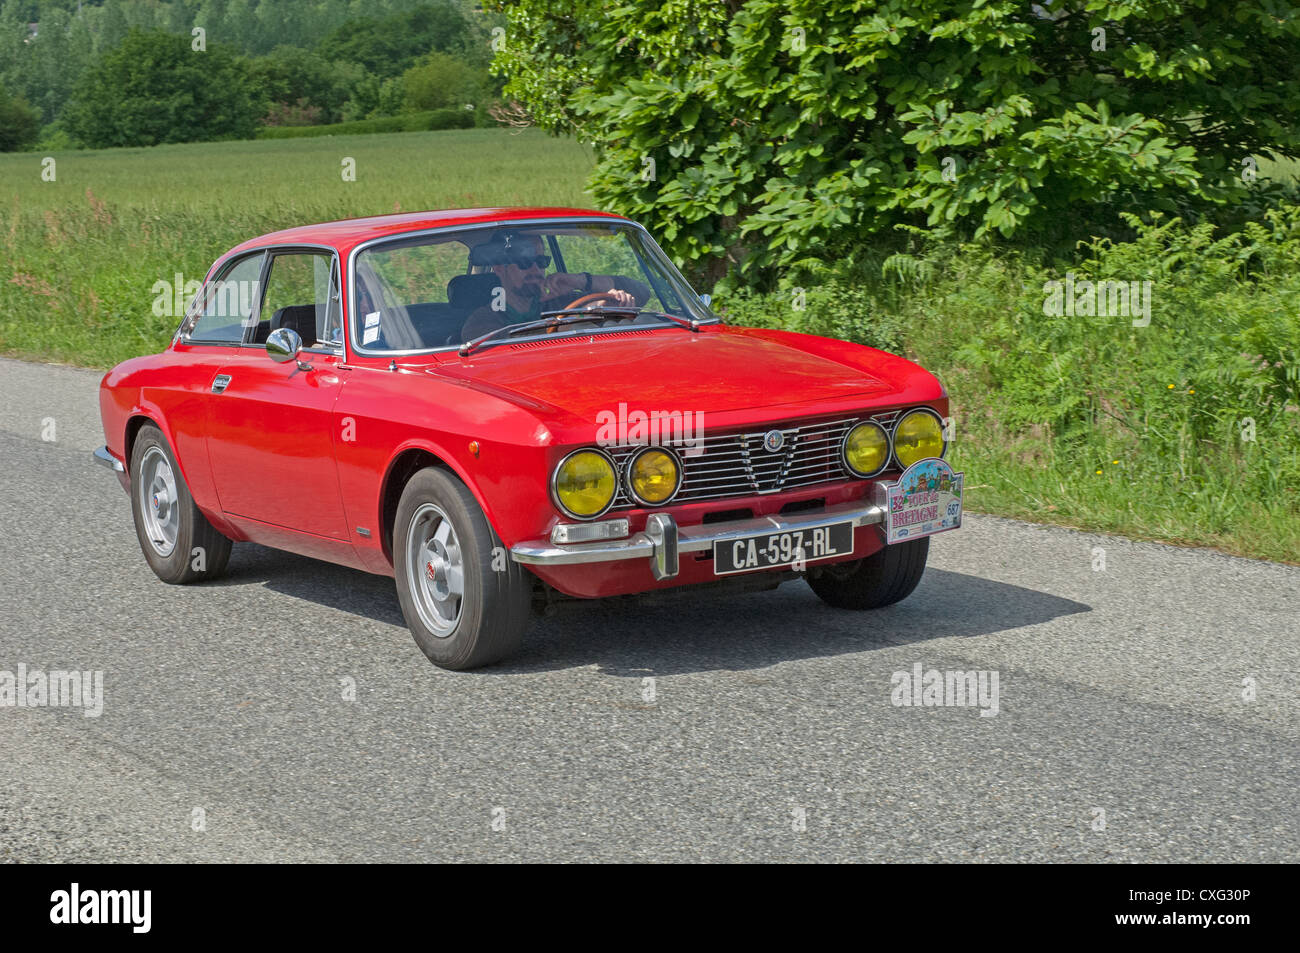 alfa romeo gtv stock photos alfa romeo gtv stock images alamy. Black Bedroom Furniture Sets. Home Design Ideas